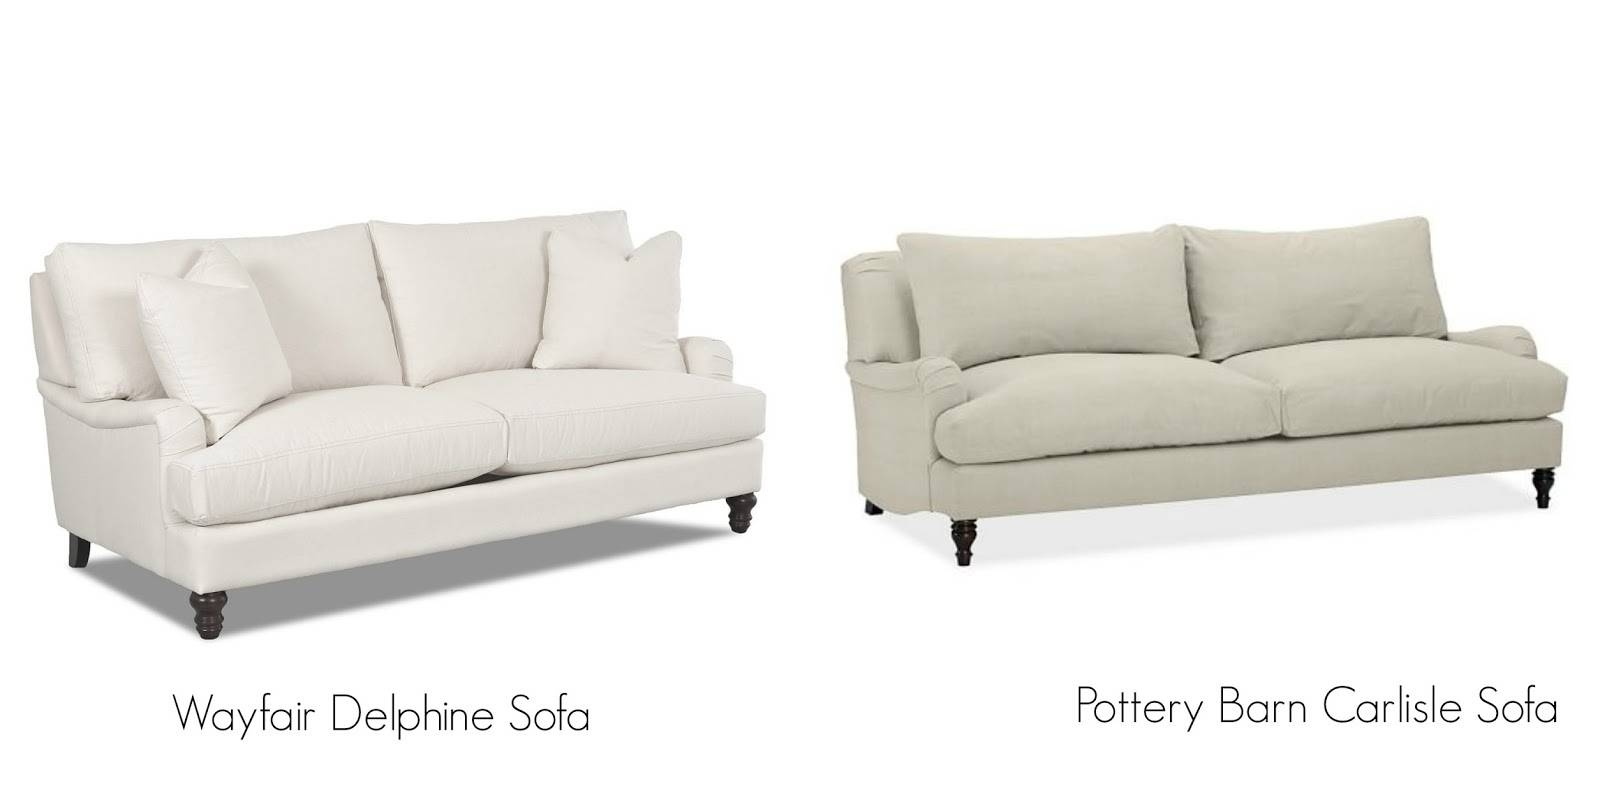 Savvy Southern Style: The Sofa And Chair Saga Continues pertaining to Oxford Sofas (Image 27 of 30)